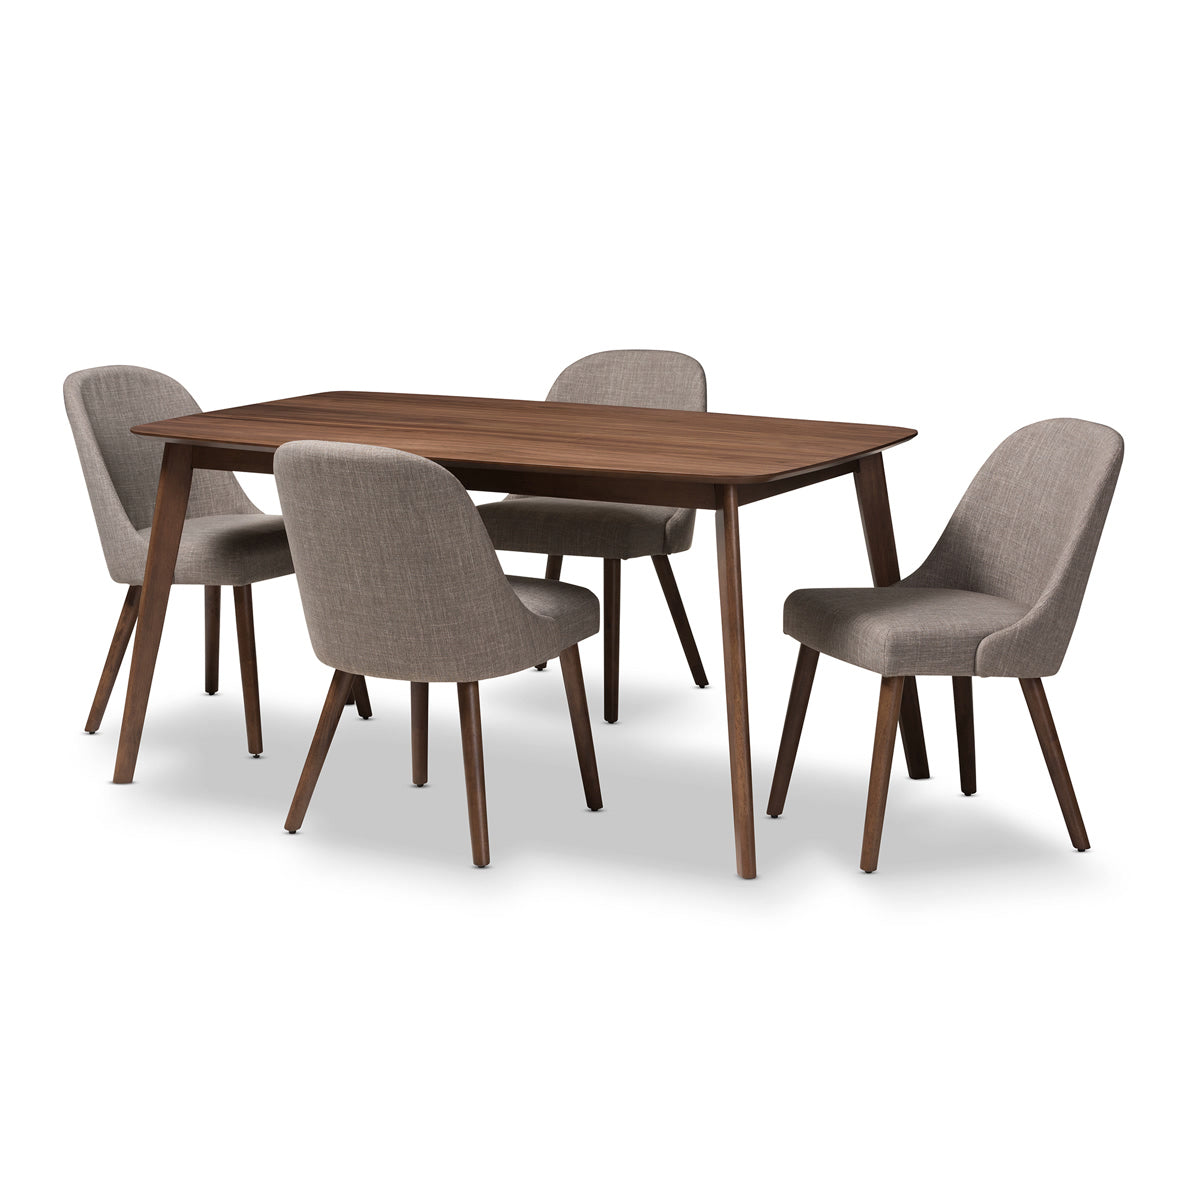 Baxton Studio Cody Mid-Century Modern Light Grey Fabric Upholstered Walnut Finished Wood 5-Piece Dining Set Baxton Studio-0-Minimal And Modern - 1